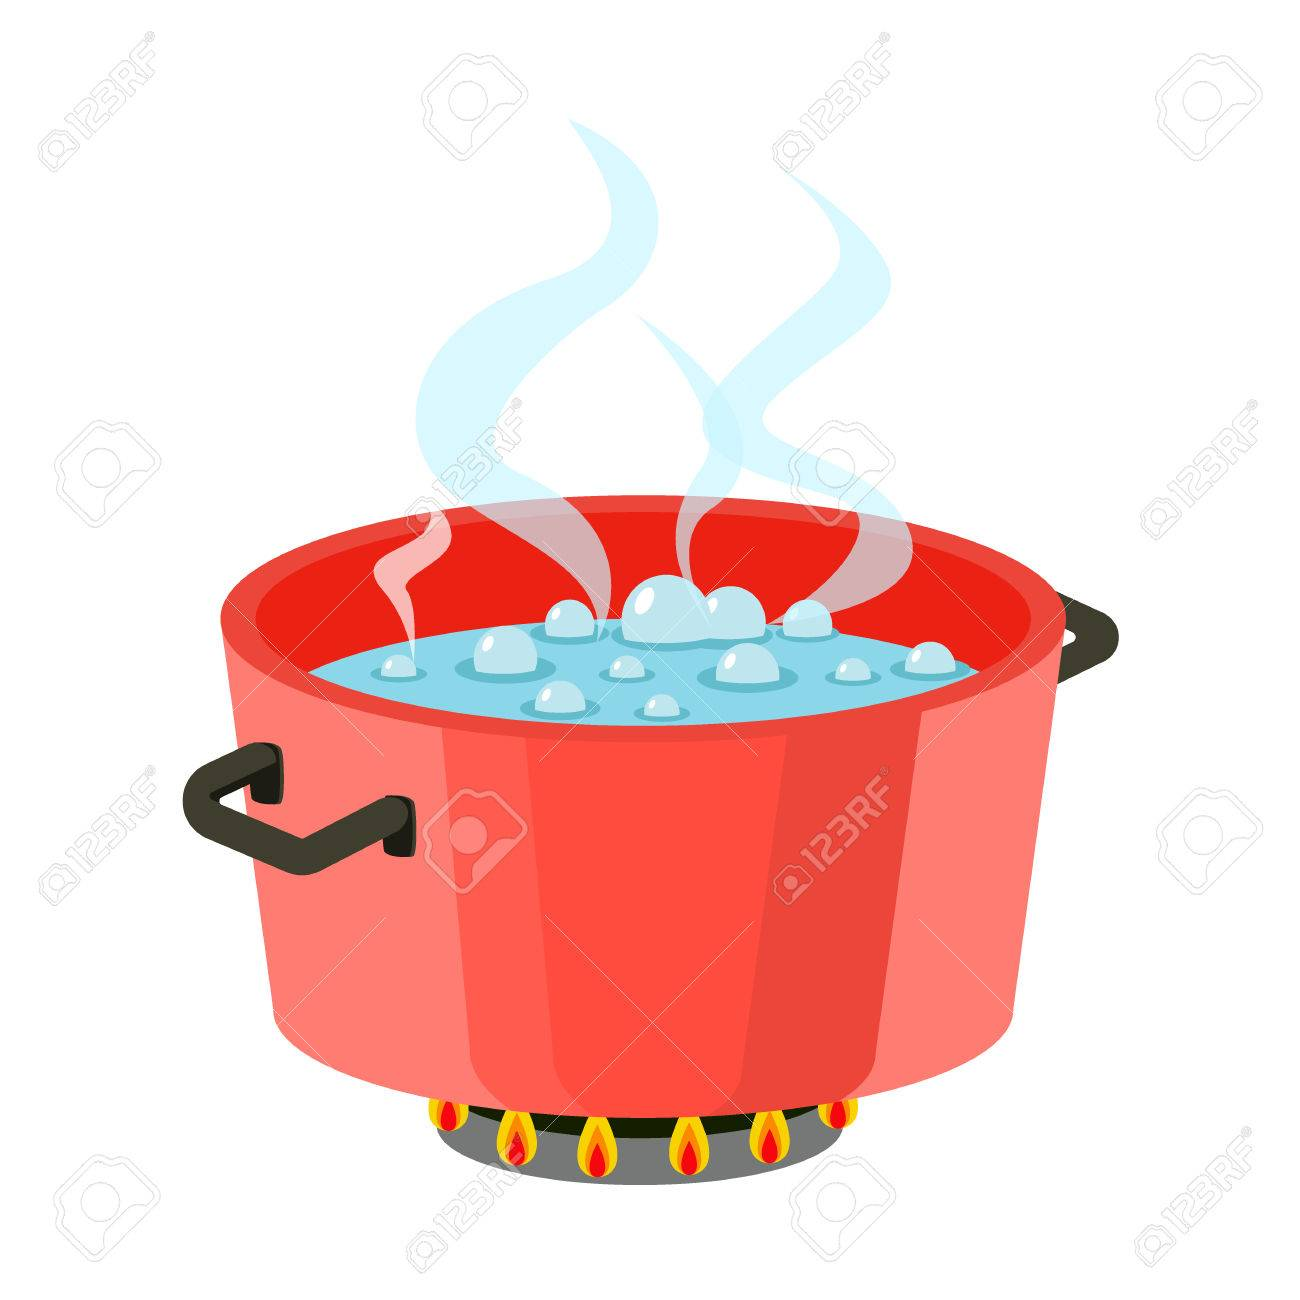 boiling water in pan red cooking pot on stove with water and rh 123rf com crawfish boiling pot clip art Crawfish Boiling Pot Clip Art